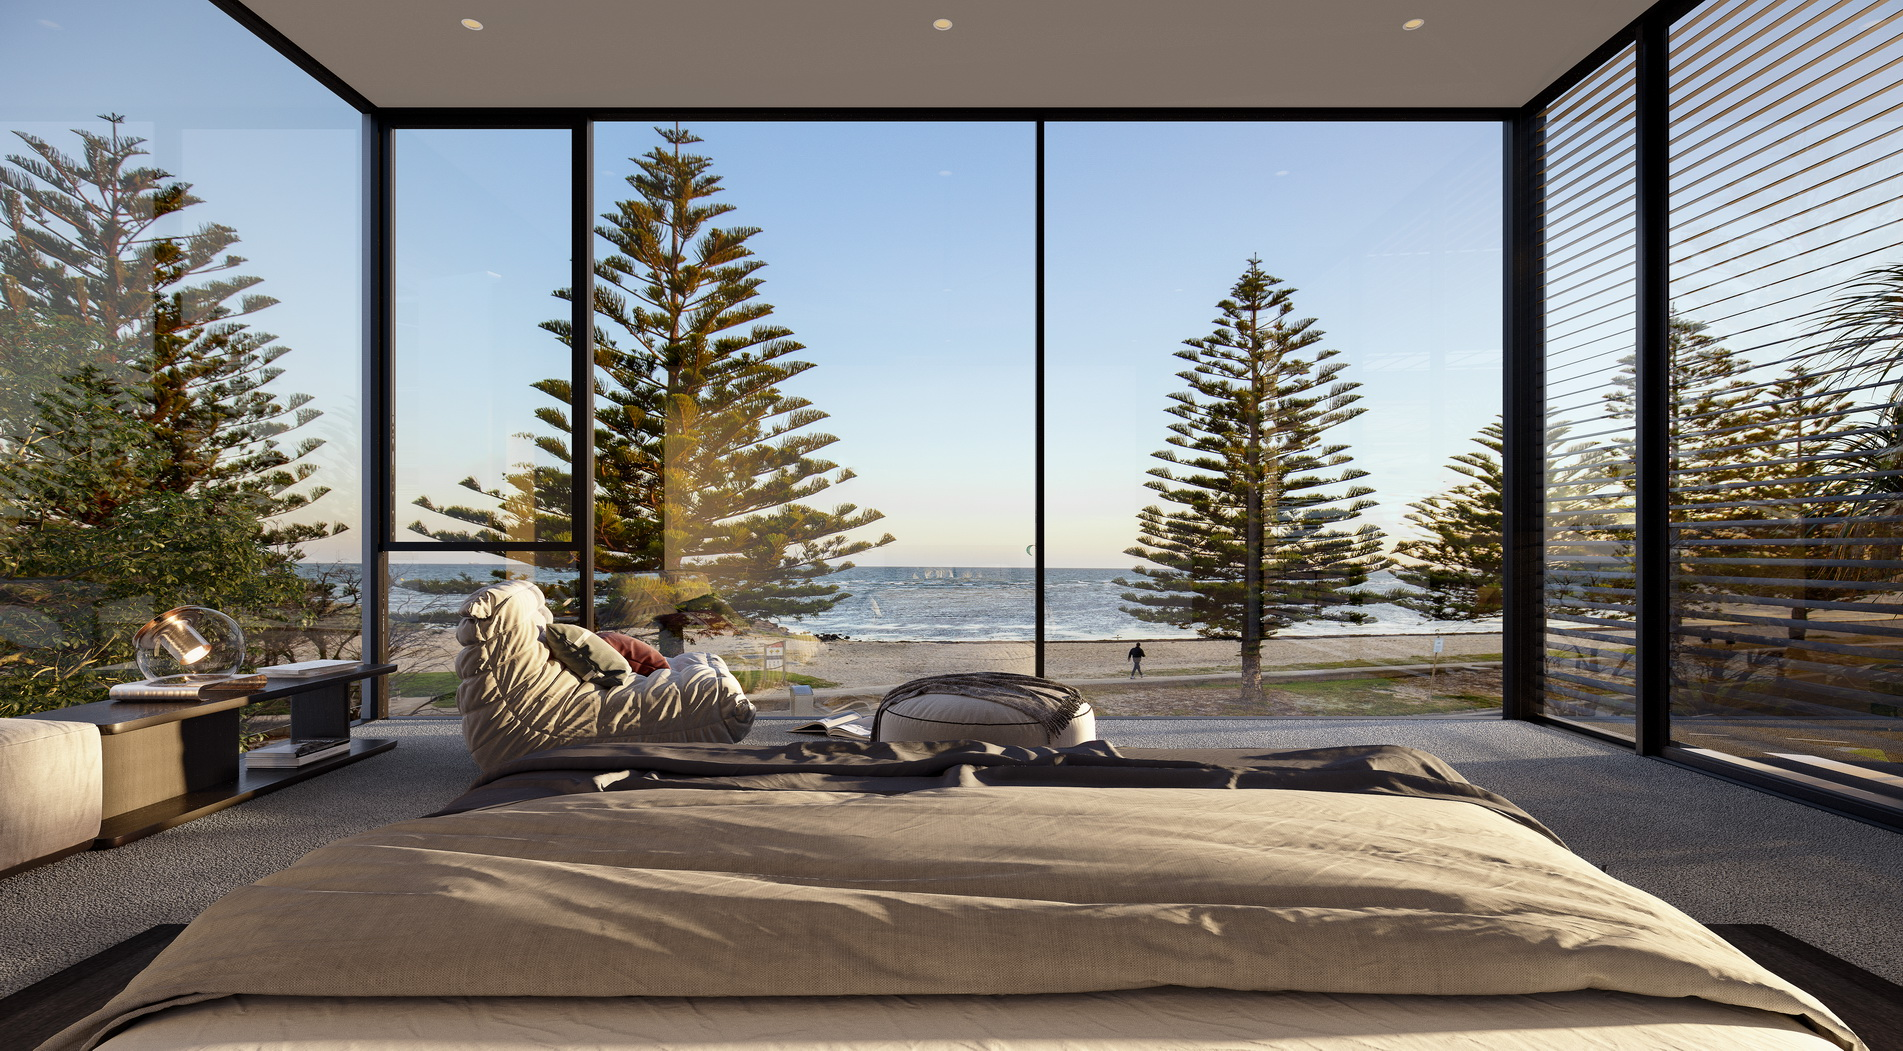 Mancini-Esplanade-3D-image-visualisation-living-bedroom-view-photography